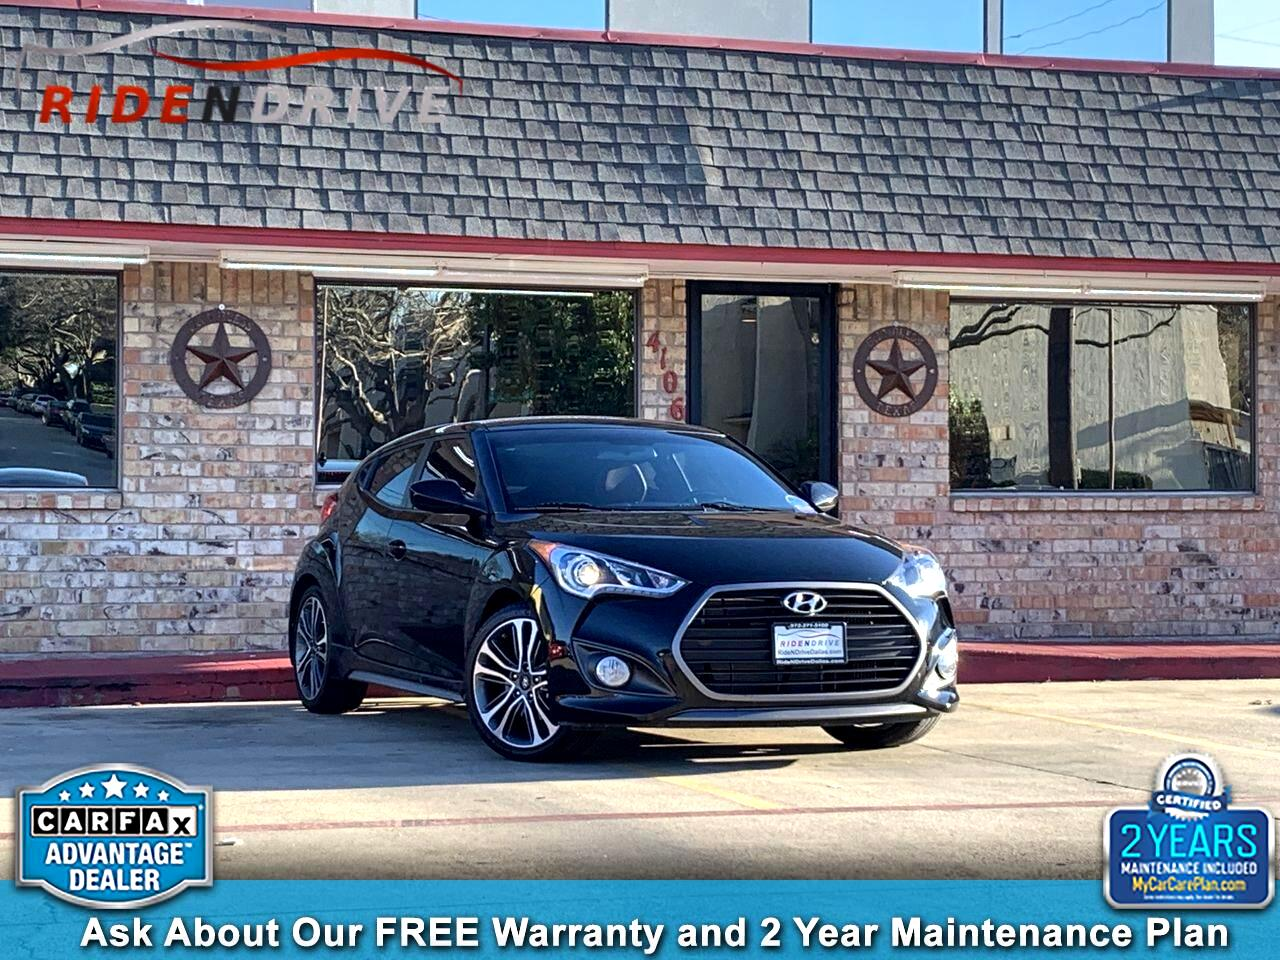 2016 Hyundai Veloster 3dr Cpe Man Turbo R-Spec